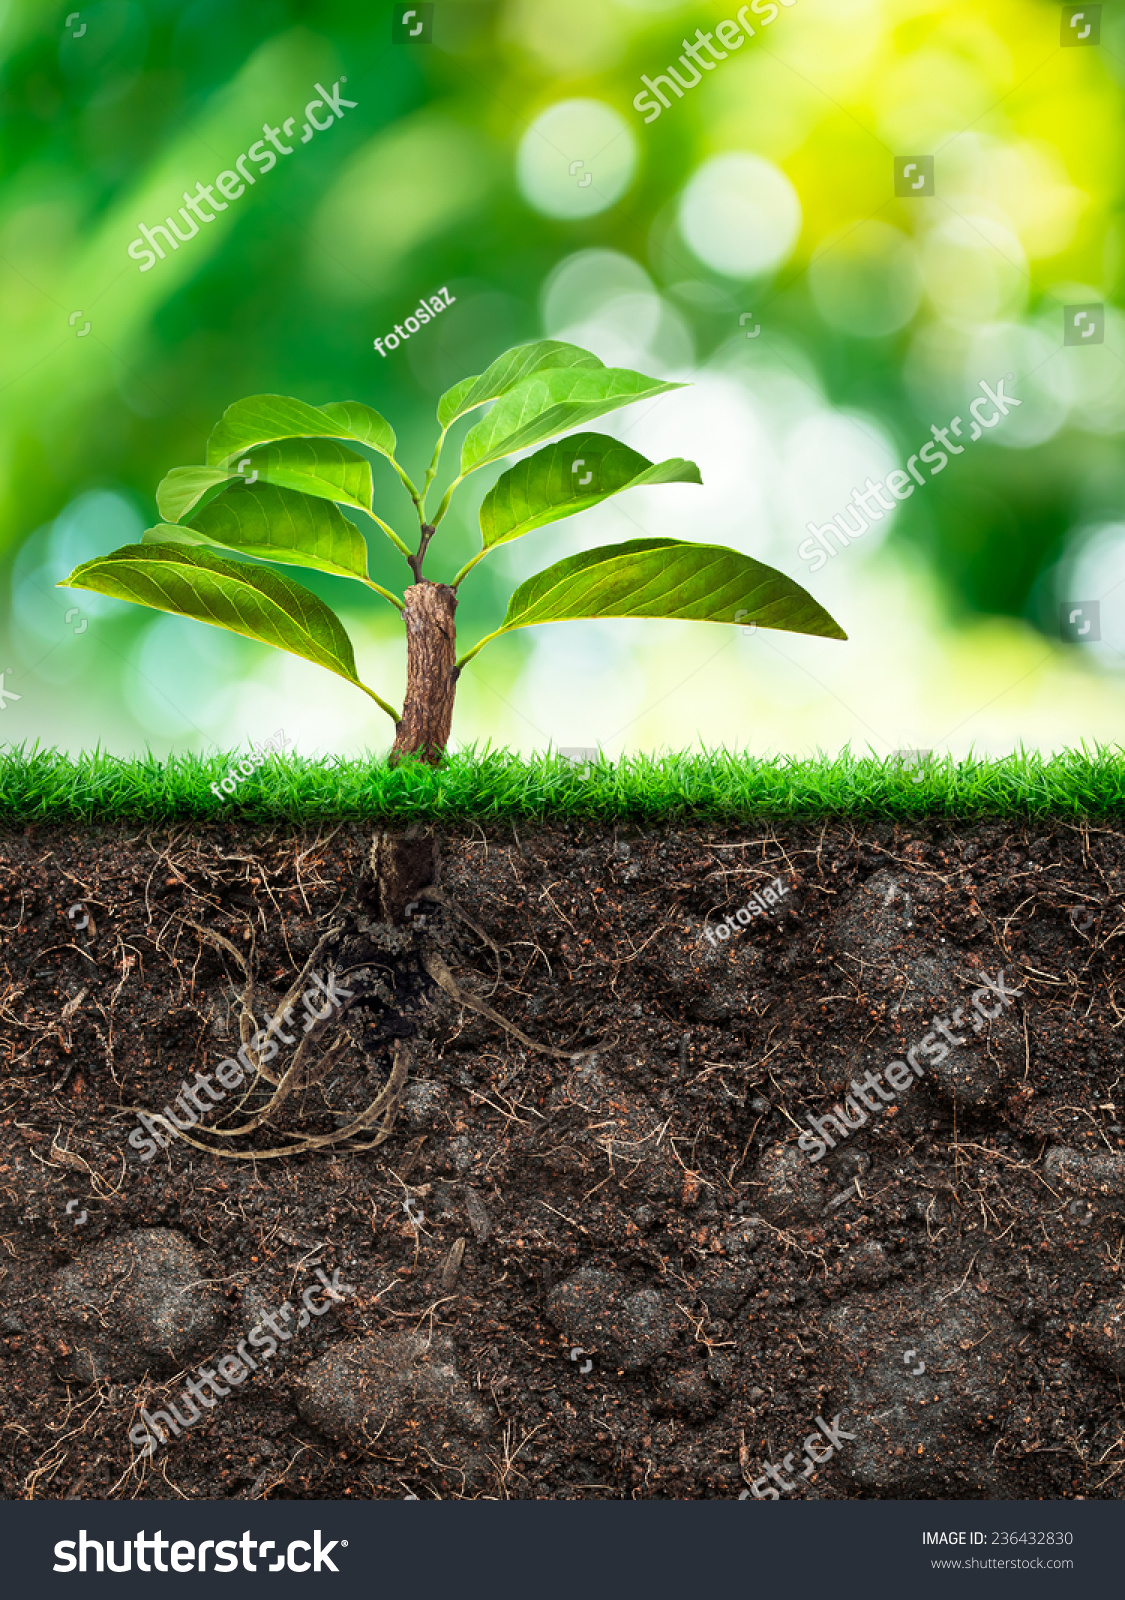 Origin tree soil grass green blur stock photo 236432830 for Origin of soil